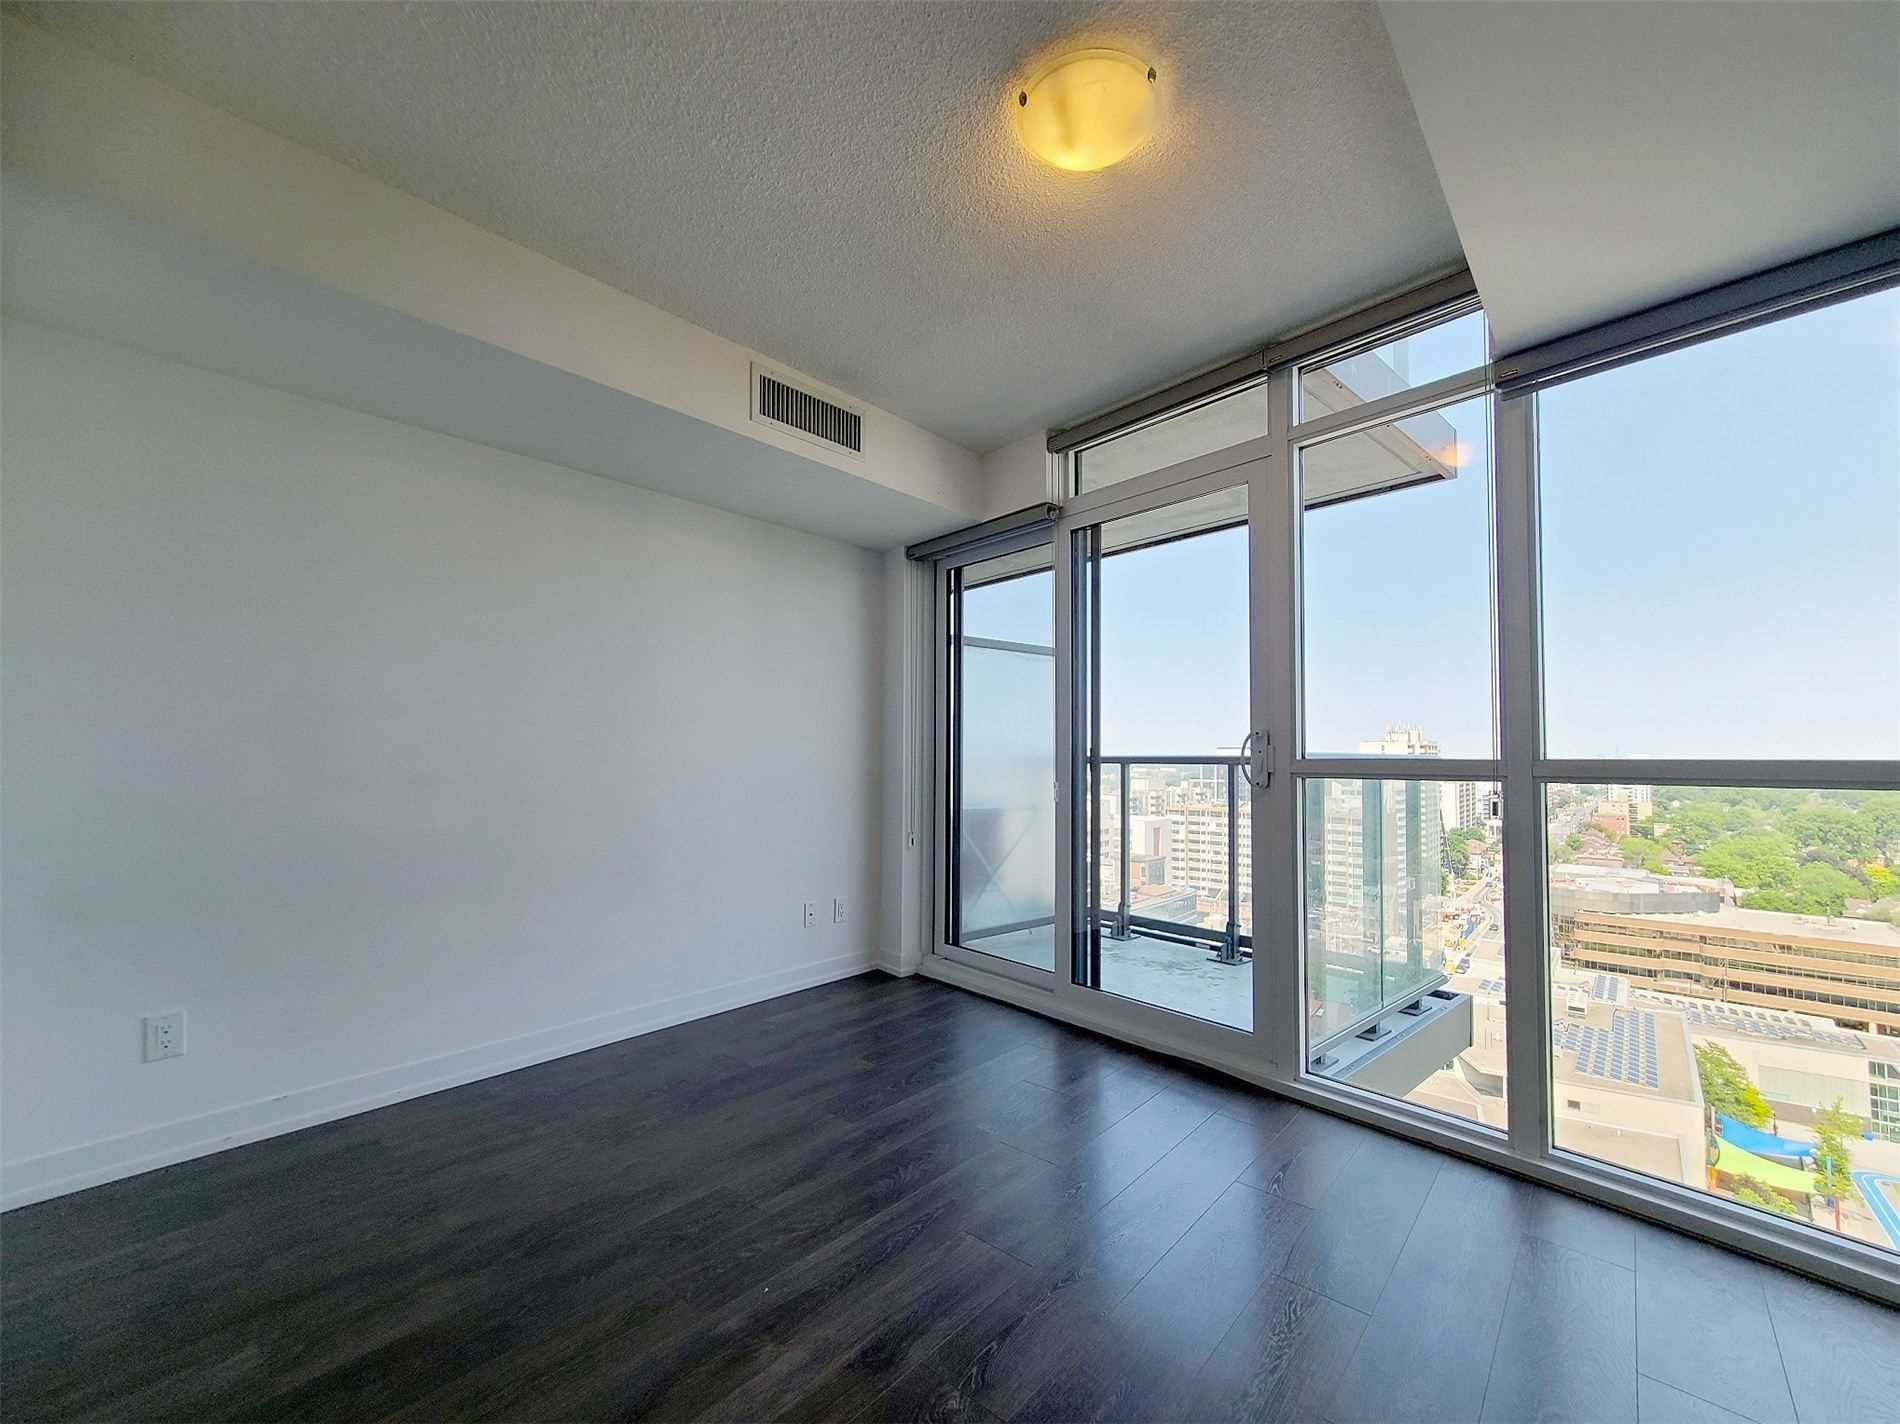 125 Redpath Ave, unit 1612 for rent in Toronto - image #2